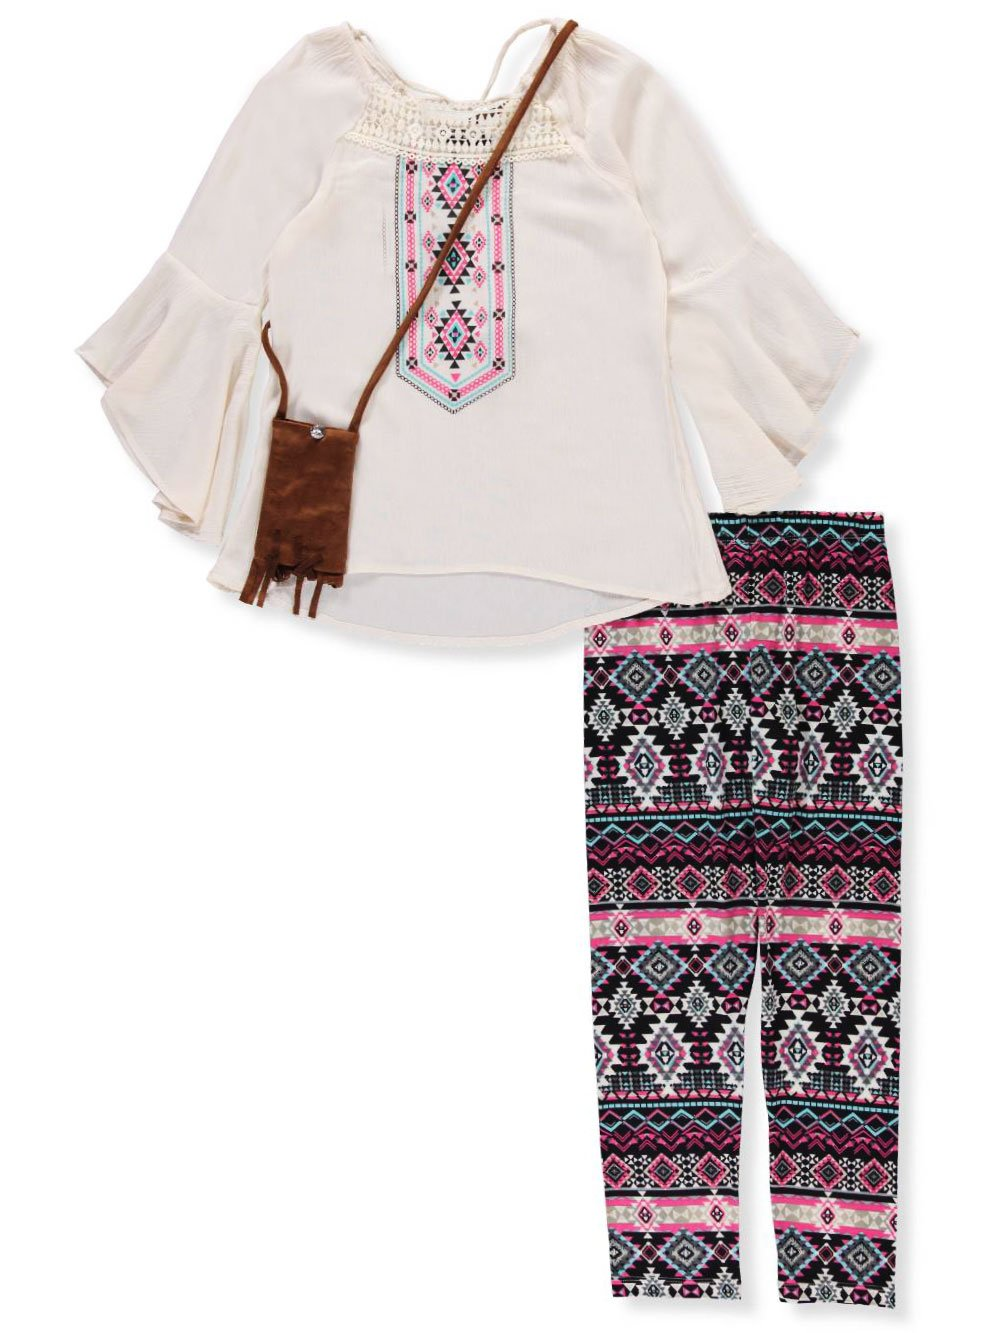 RMLA Big Girls' 2-Piece Leggings Set Outfit with Purse - Ivory, 8